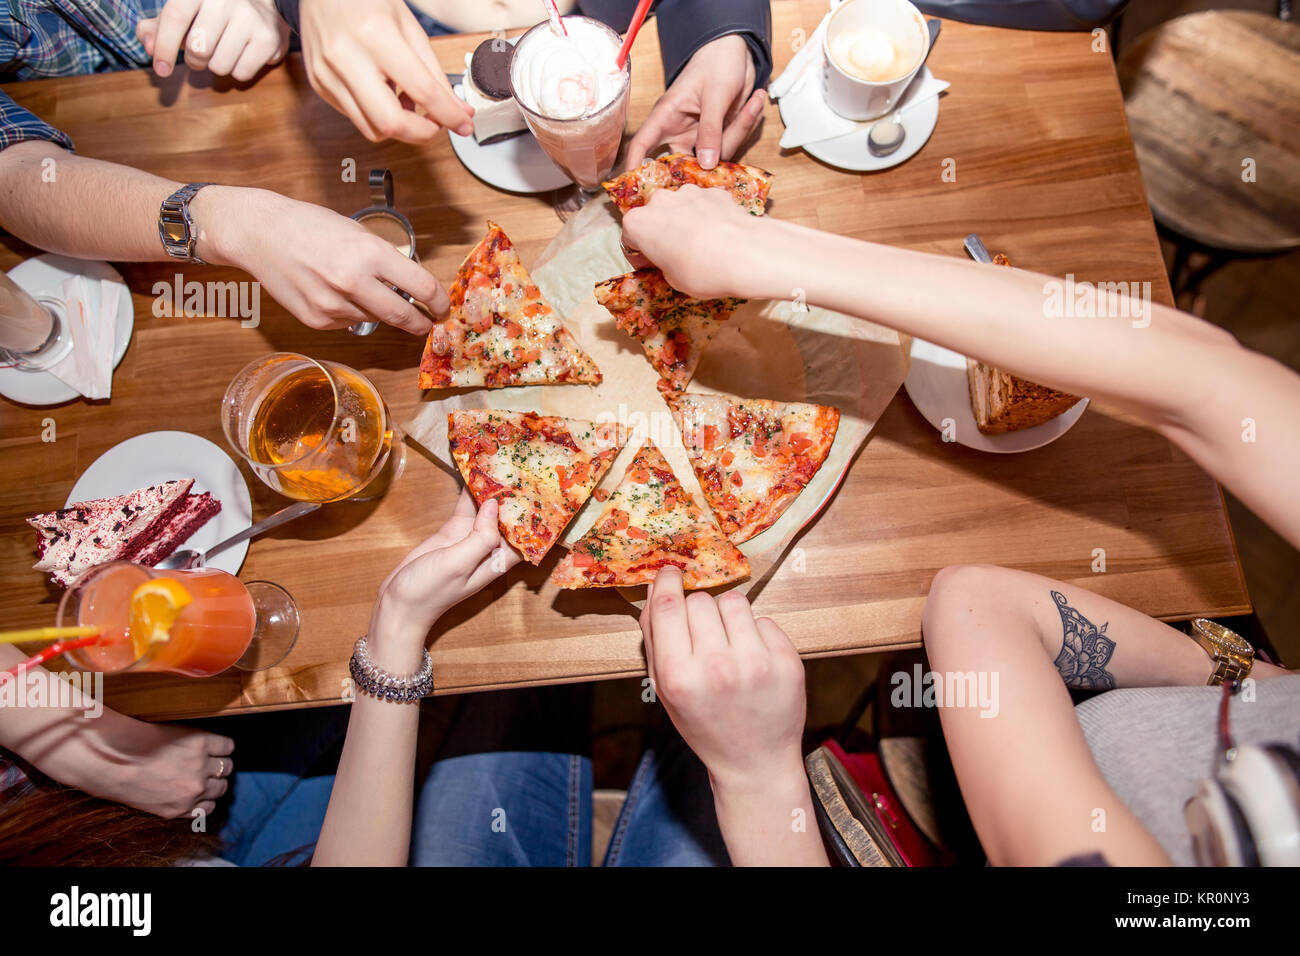 Friends eating pizza at home party, closeup - Stock Image